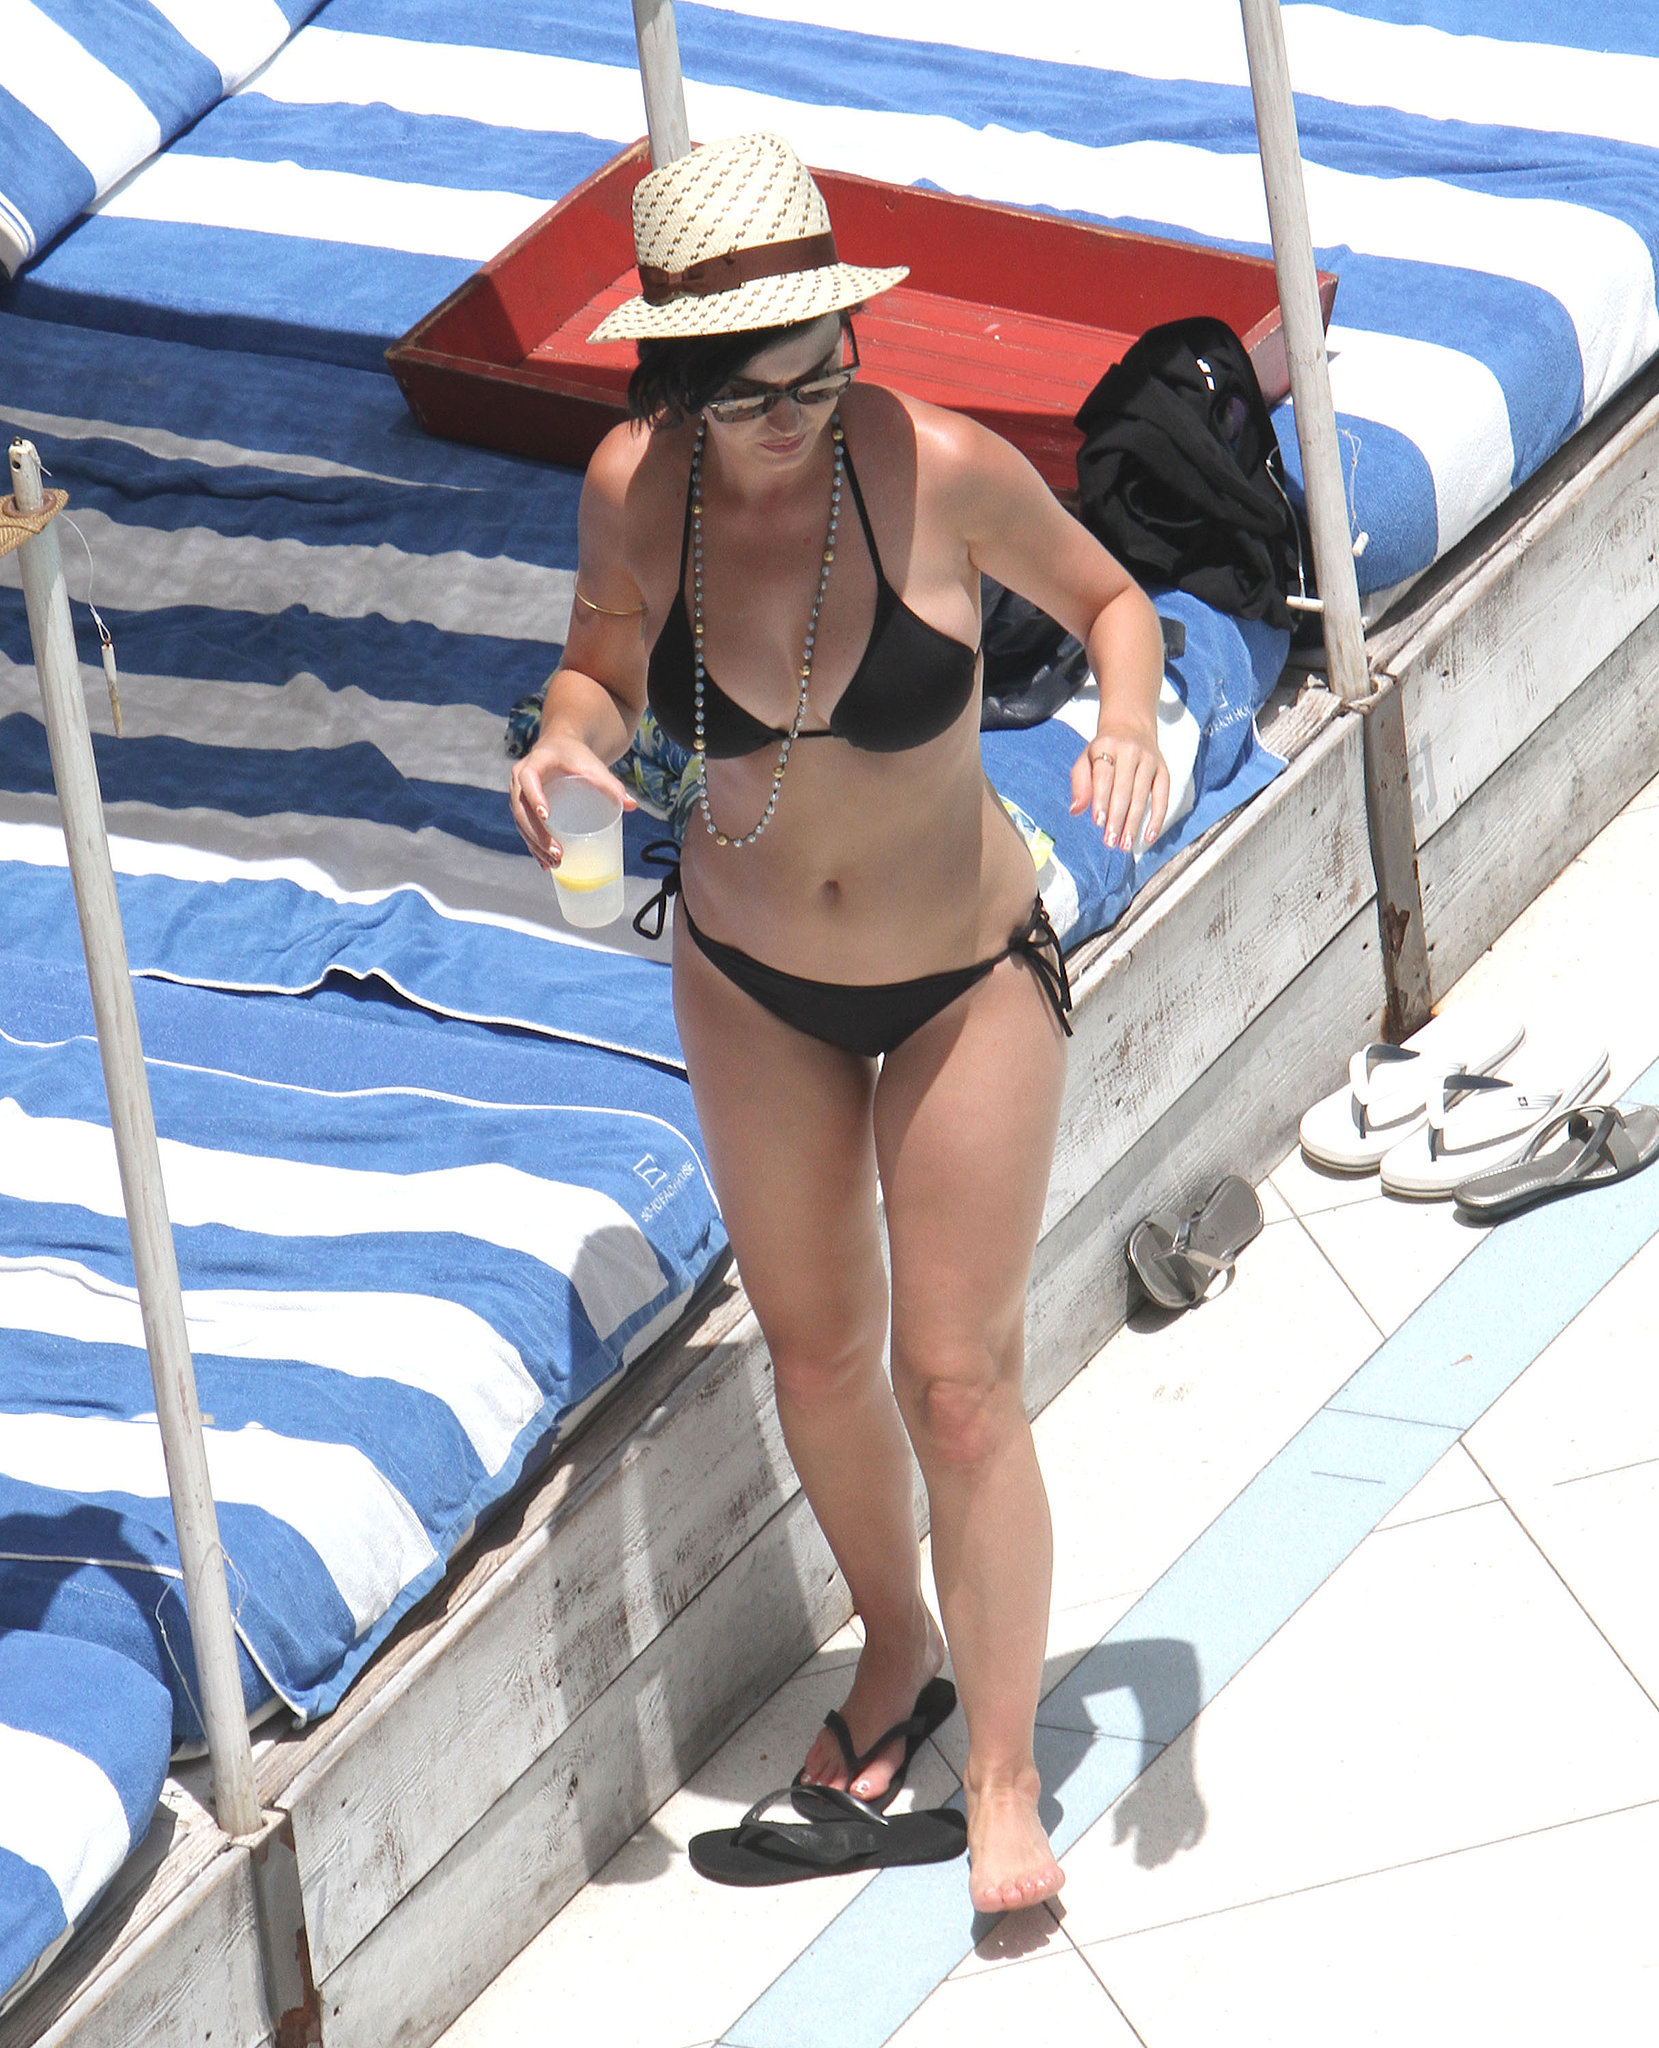 Katy-Perry-showed-off-her-bikini-body-Miami-July-2012